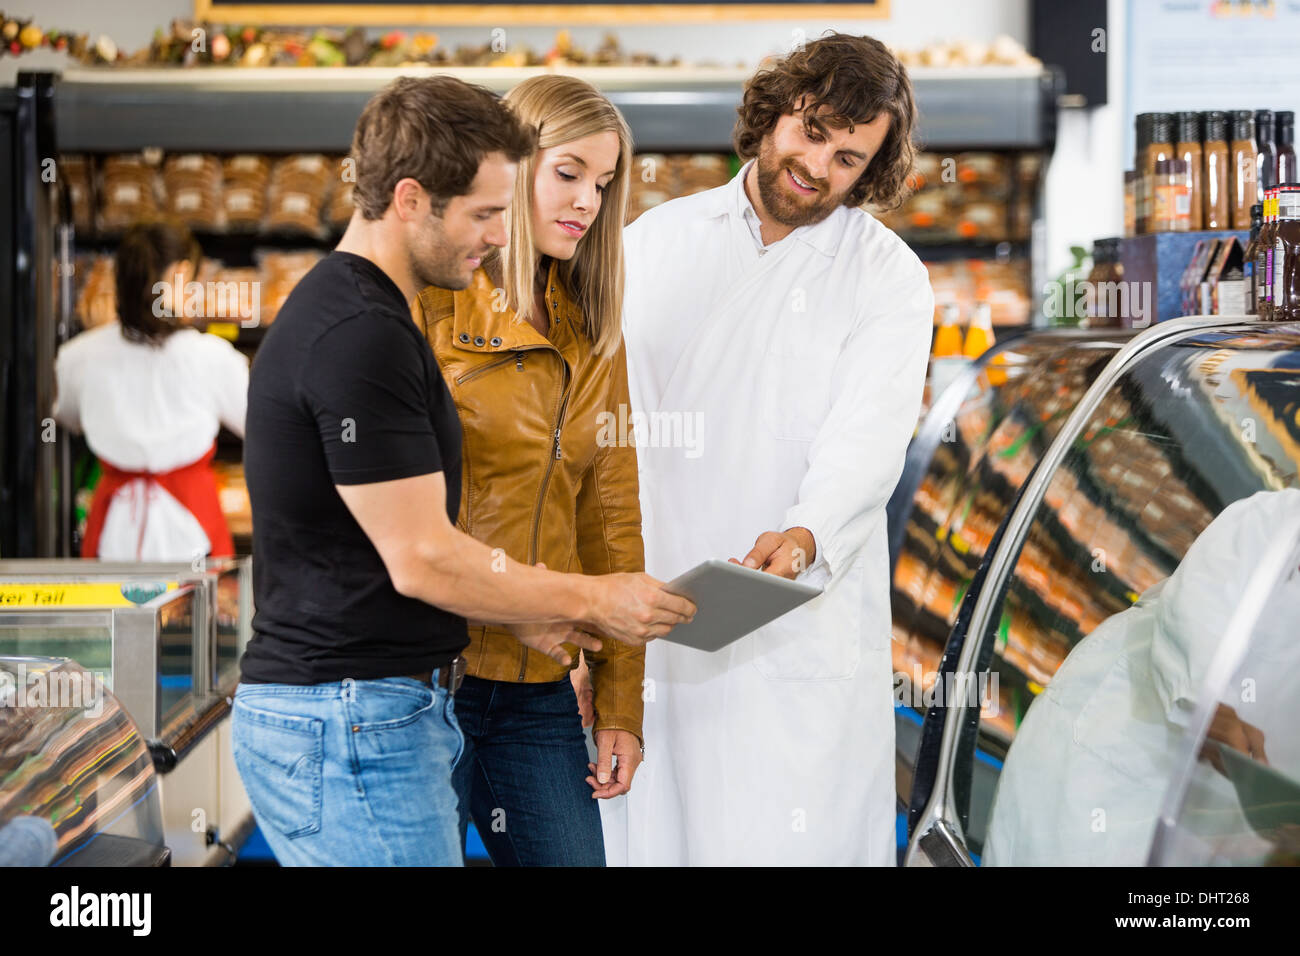 Salesman And Couple Using Digital Tablet At Butcher's Shop - Stock Image